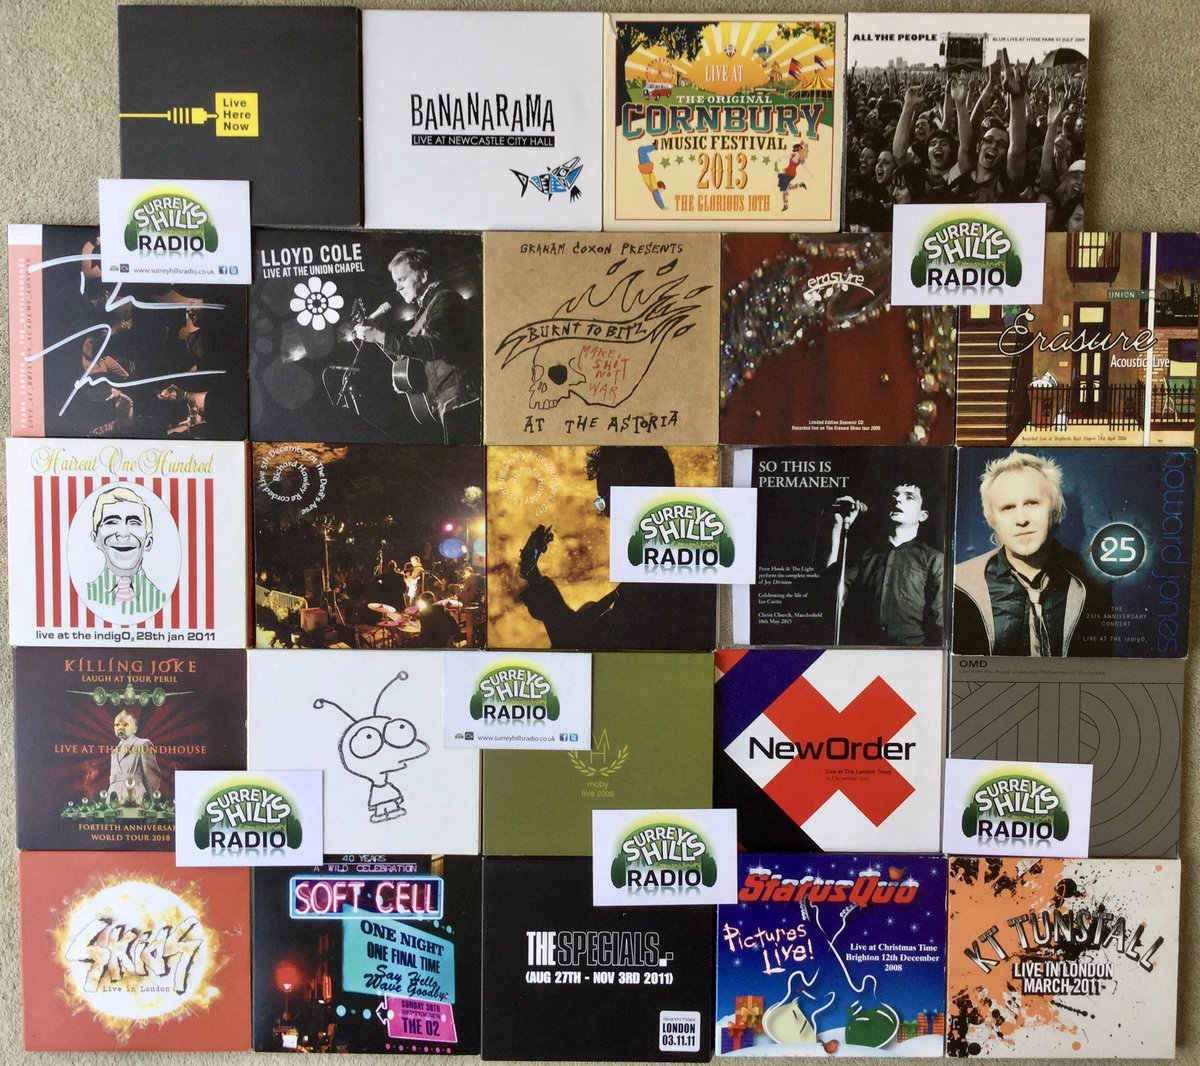 Needing a #livemusic fix? Aren't we all! ListenAgain to Sunday's In #Concert #RadioShow All #absolutelylive profiling #recordlabel @LHN_Recording Includes tribute to #PeterGreen founder #FleetwoodMac R.I.P. https://www.mixcloud.com/surreyhillsradio/in-concert-02-08-2020/…pic.twitter.com/flQtYduKfe